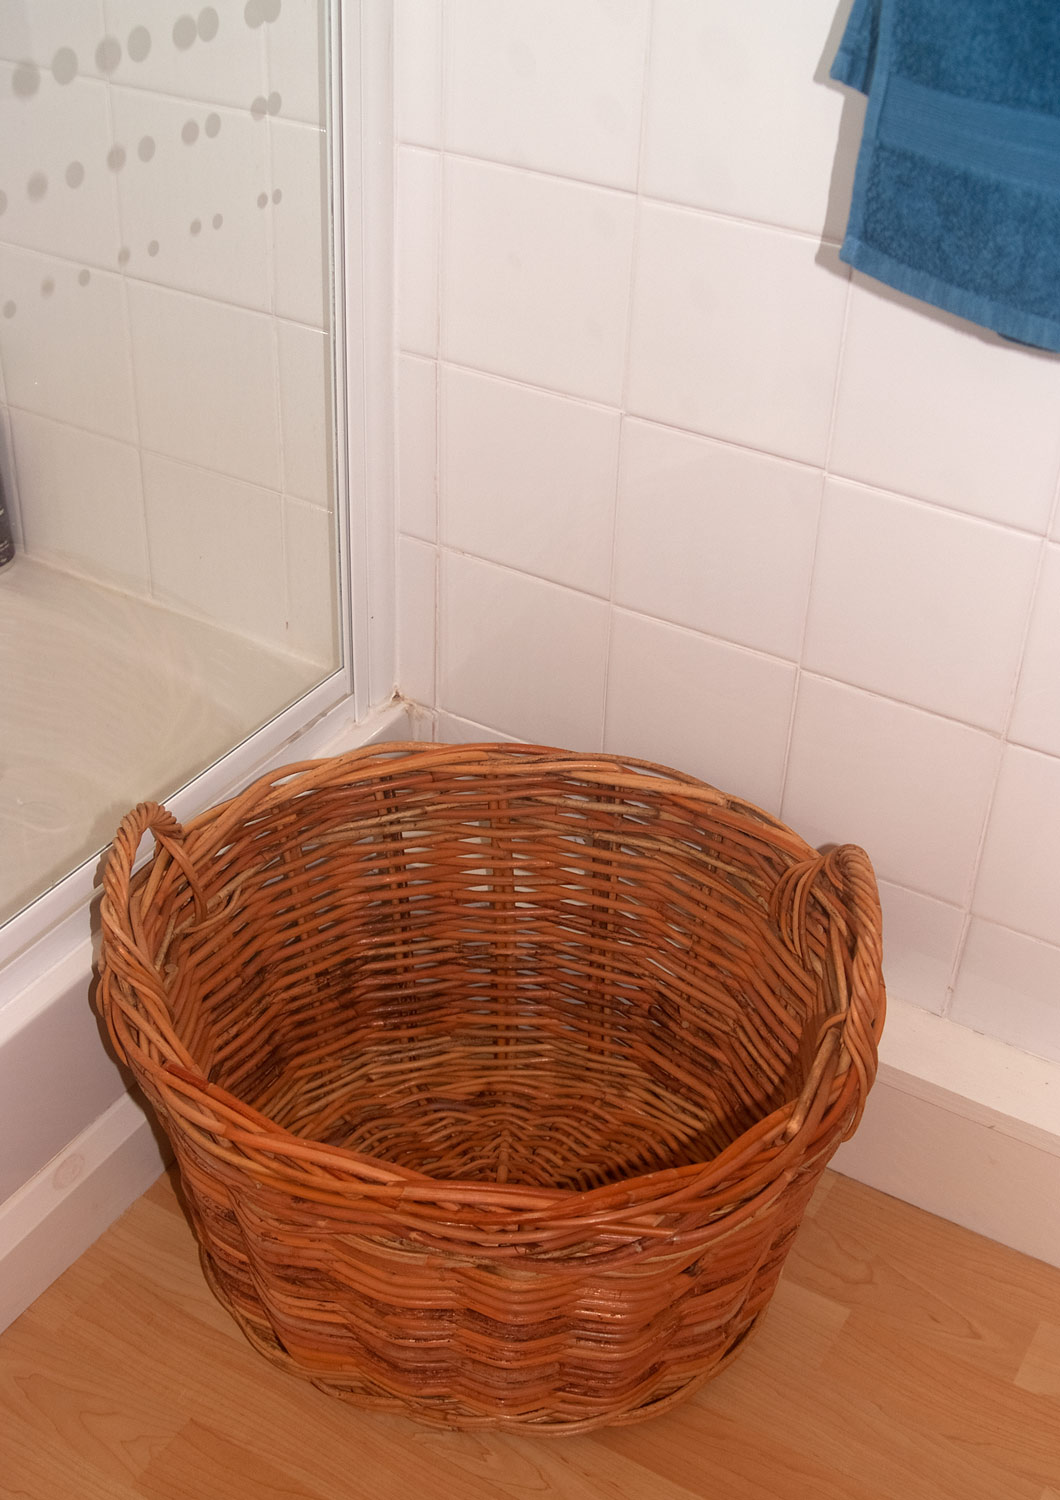 Clothes Baskets Small Rattan Washing Basket